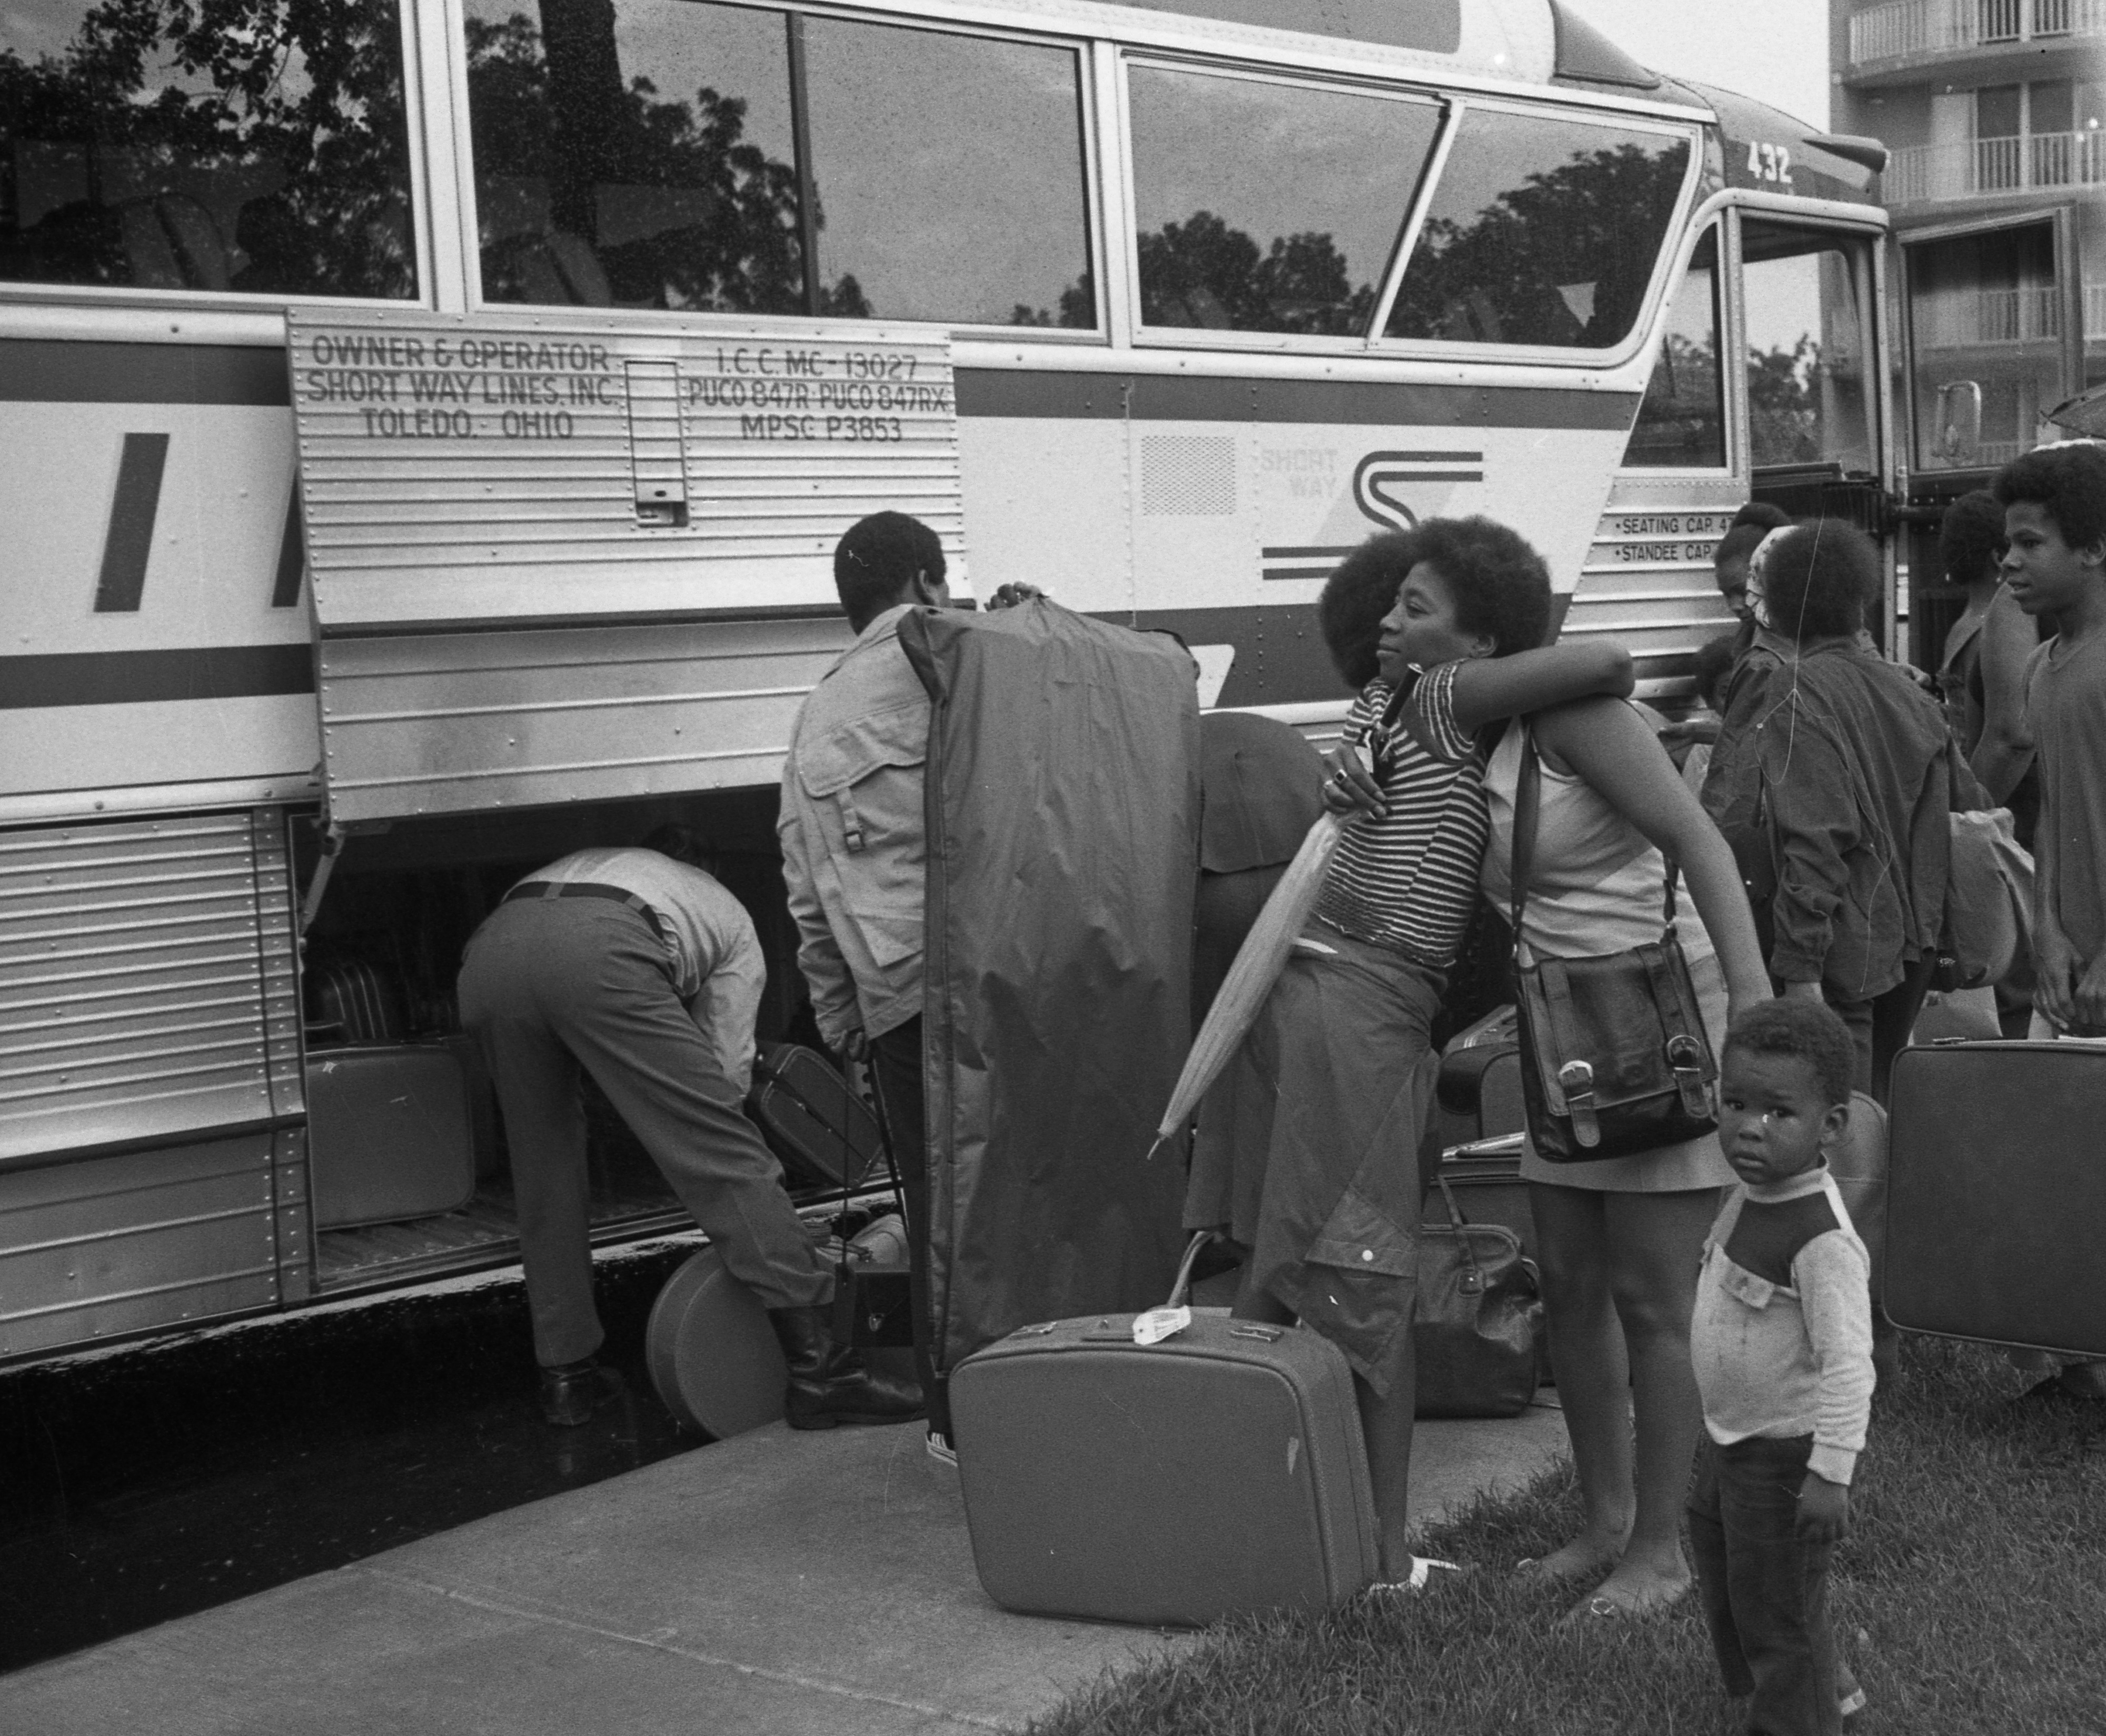 Ann Arbor Public Housing Youth Group Member Sheri Shipman Ready For Week-Long Trip, July 1973 image